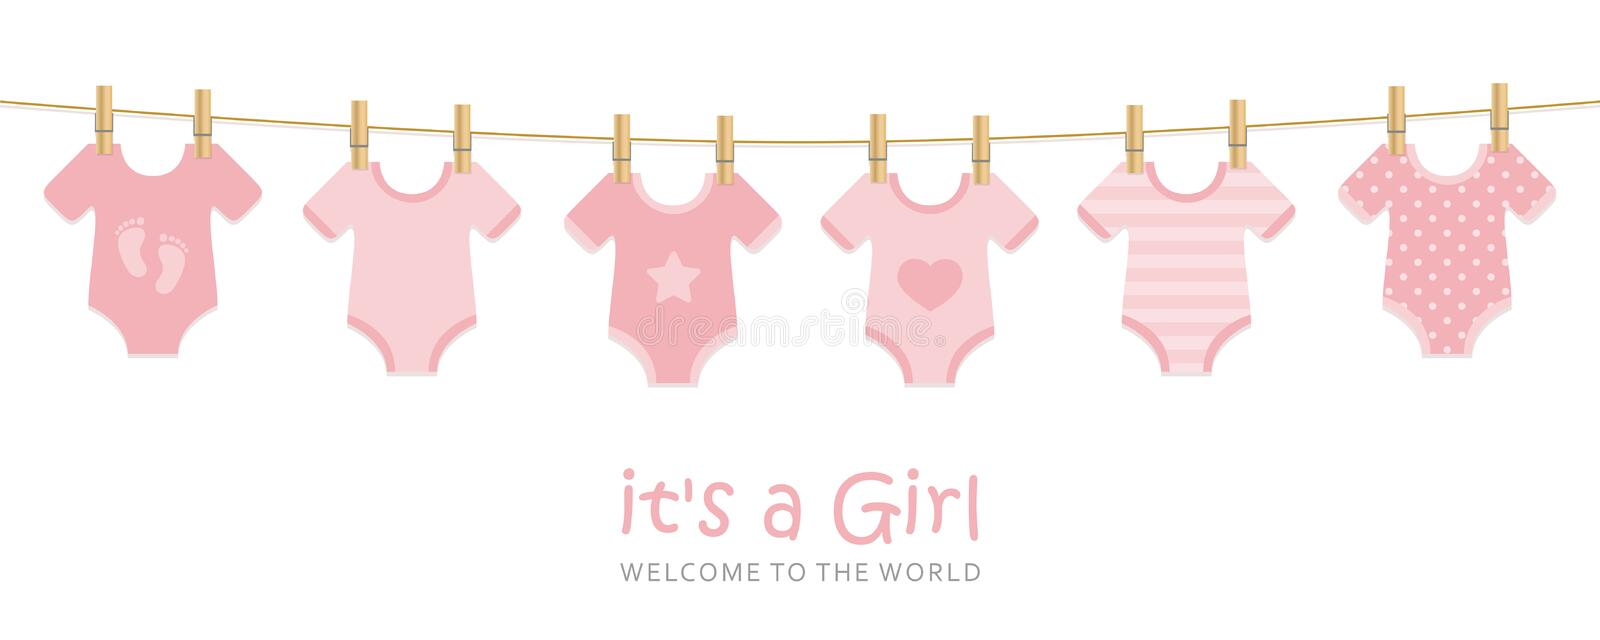 Its a girl welcome greeting card for childbirth with hanging baby bodysuits. Vector illustration EPS10 stock illustration